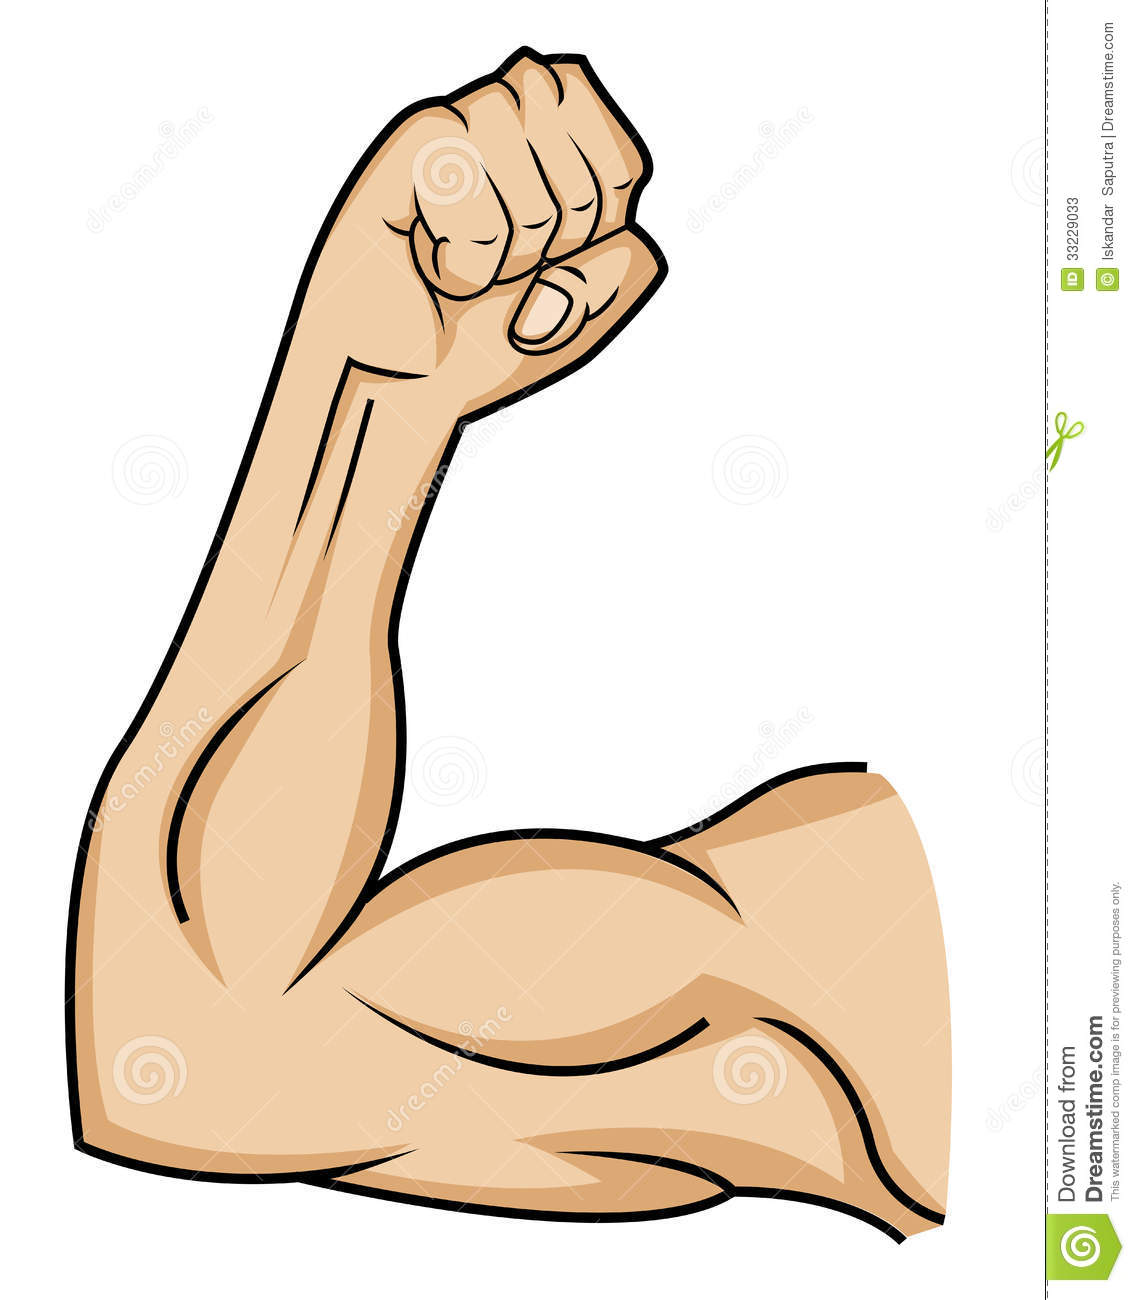 Clipart arm muscle.